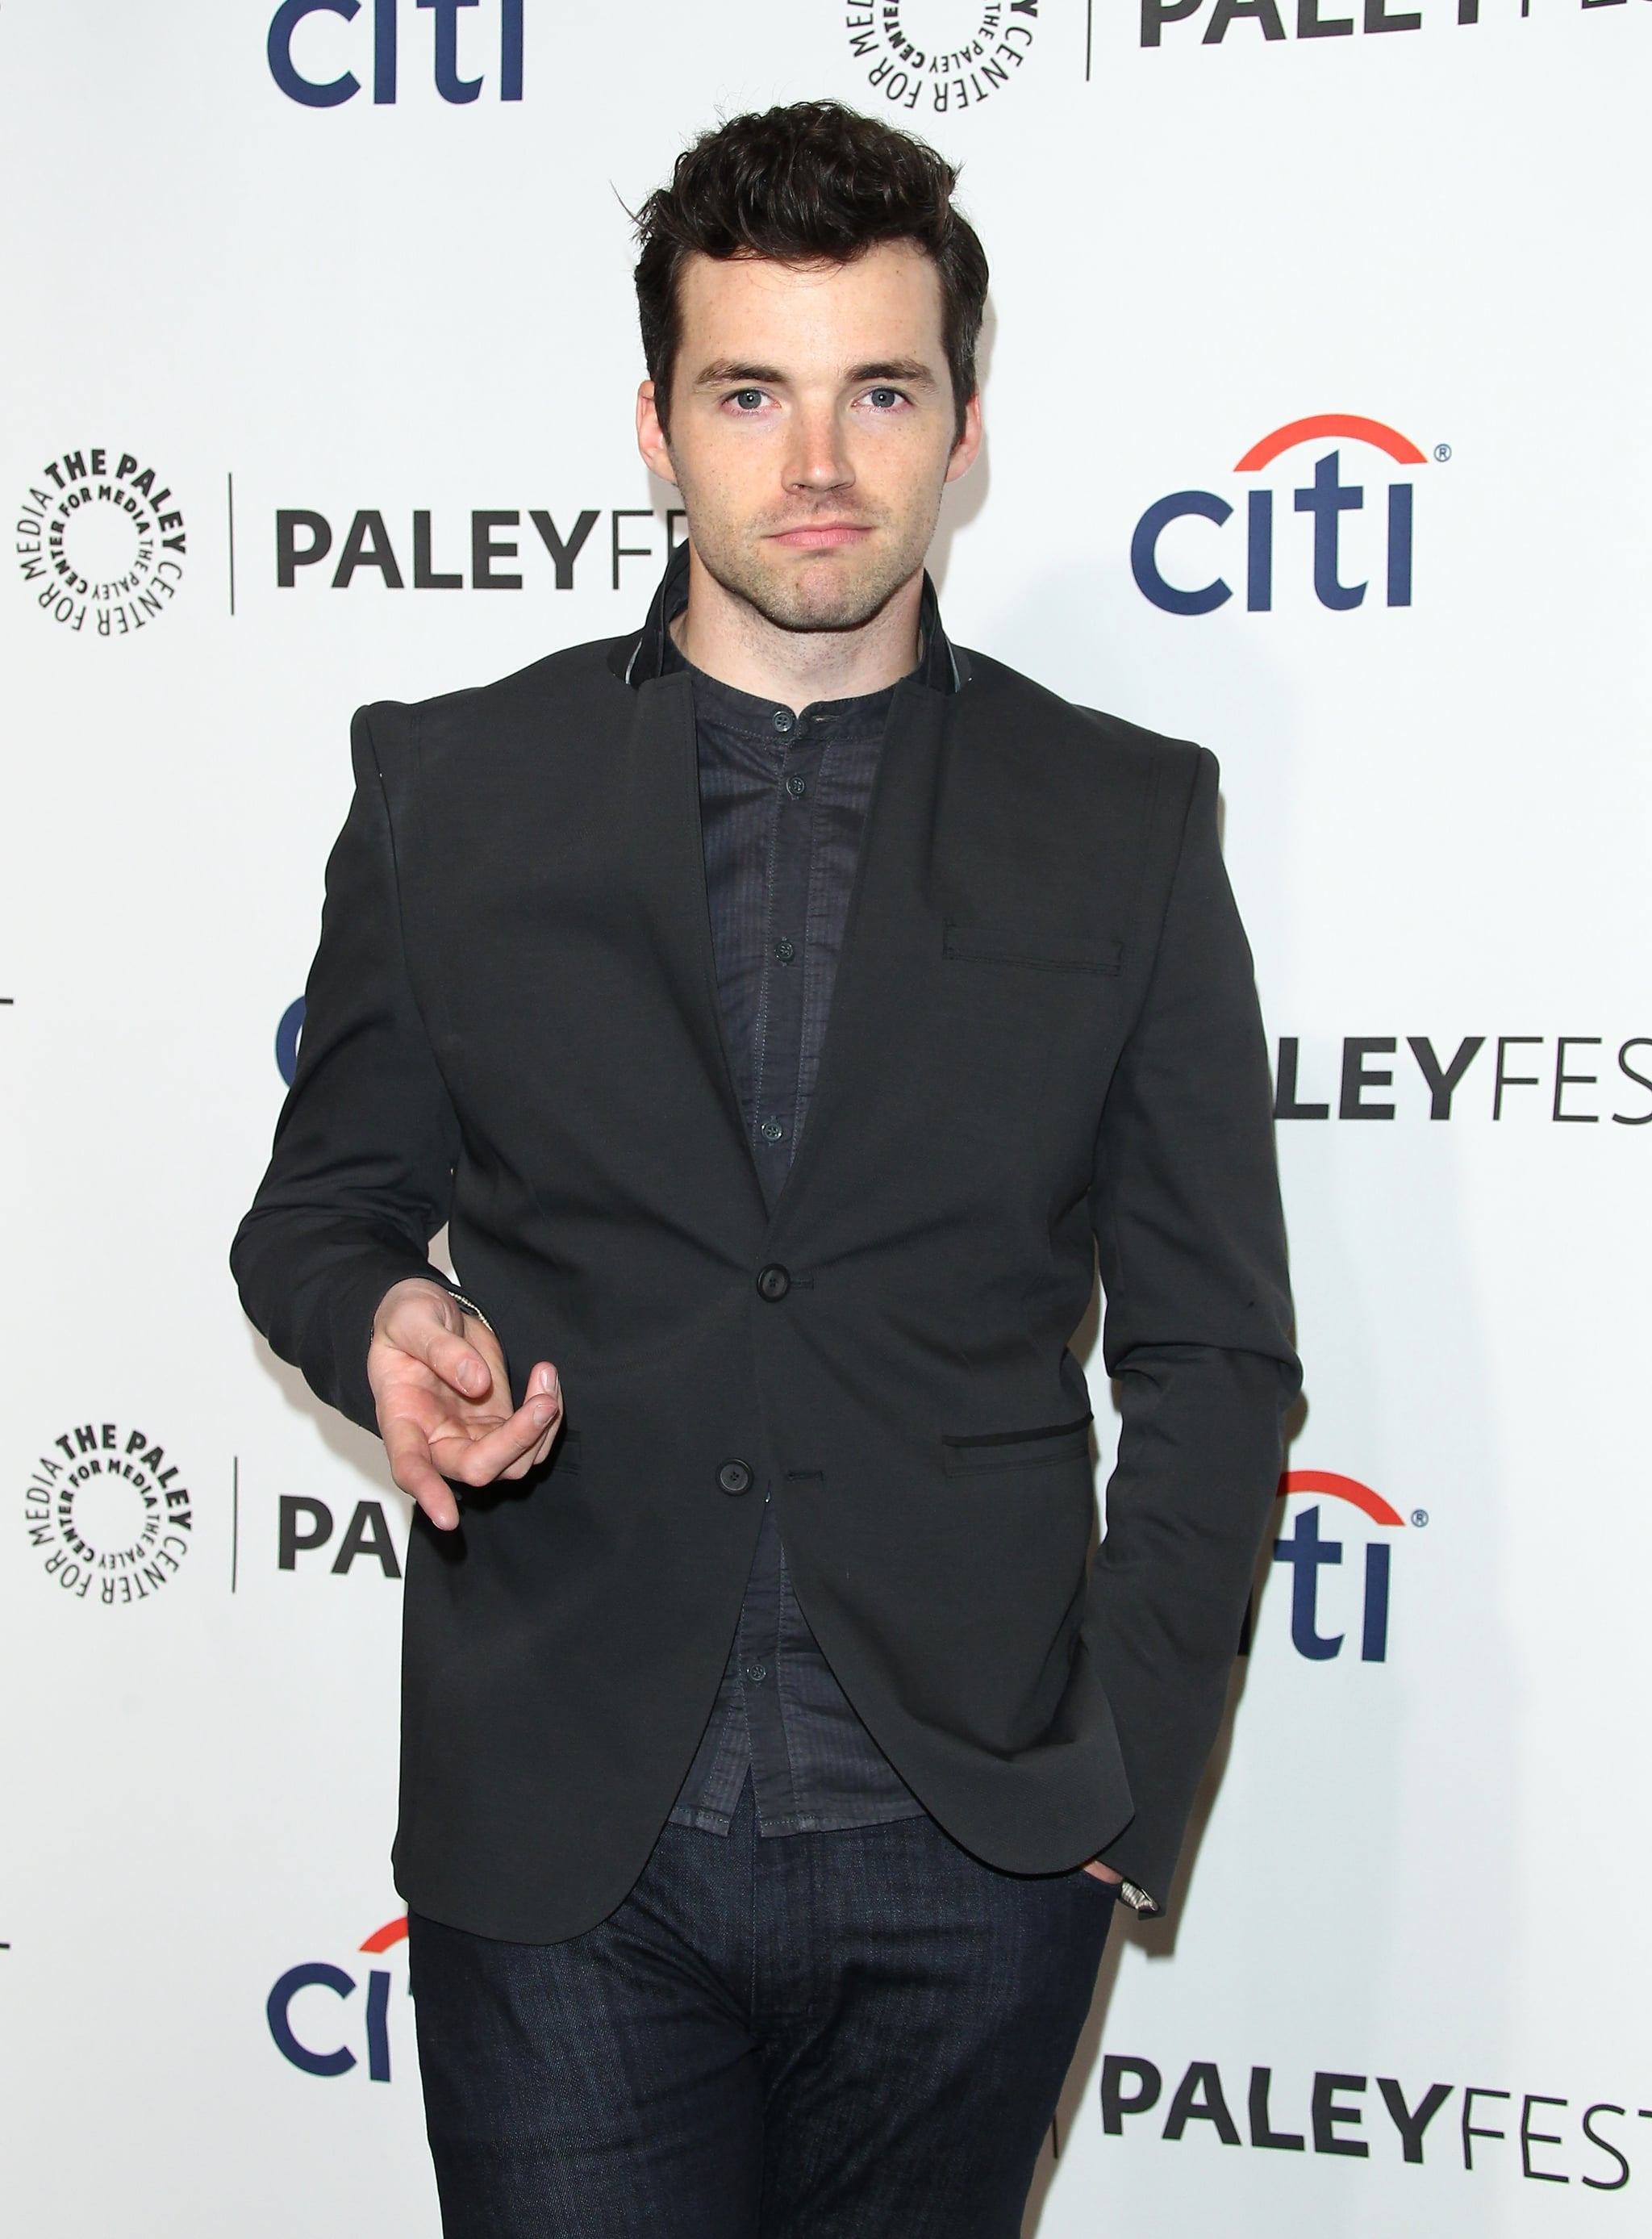 Ian Harding posed for a solo photo without his Pretty Little Liars castmates.